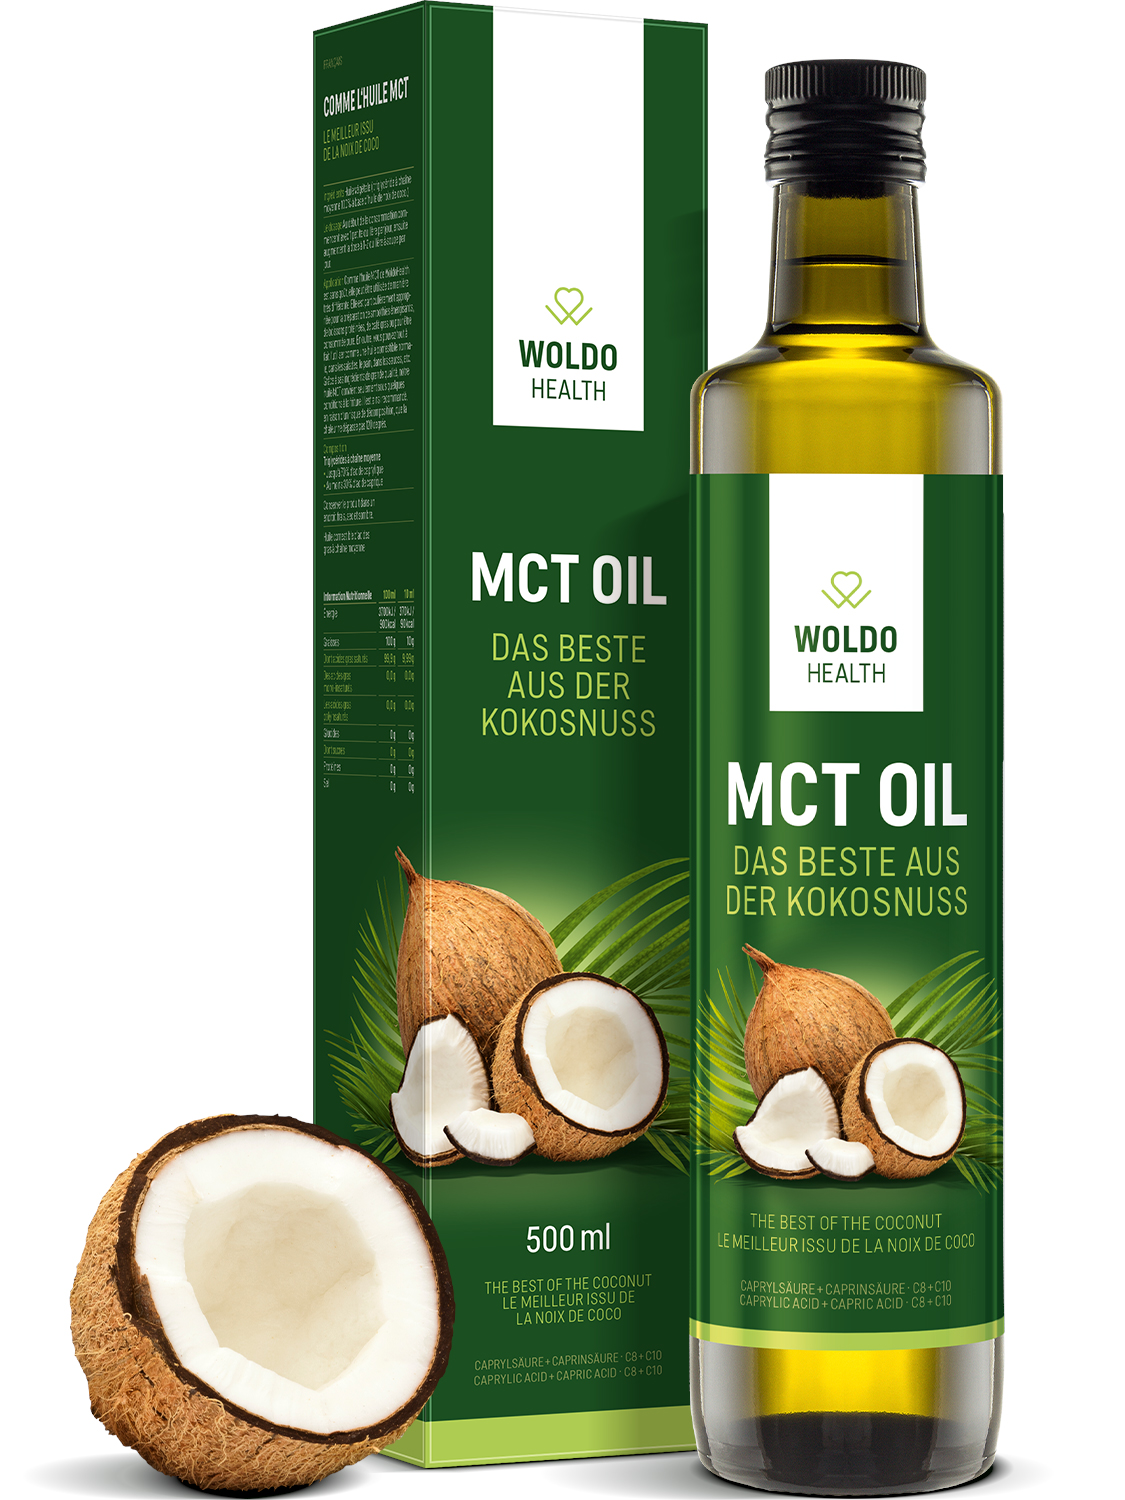 WoldoHealth_200305_MCT-Oil_500ml-01_1er